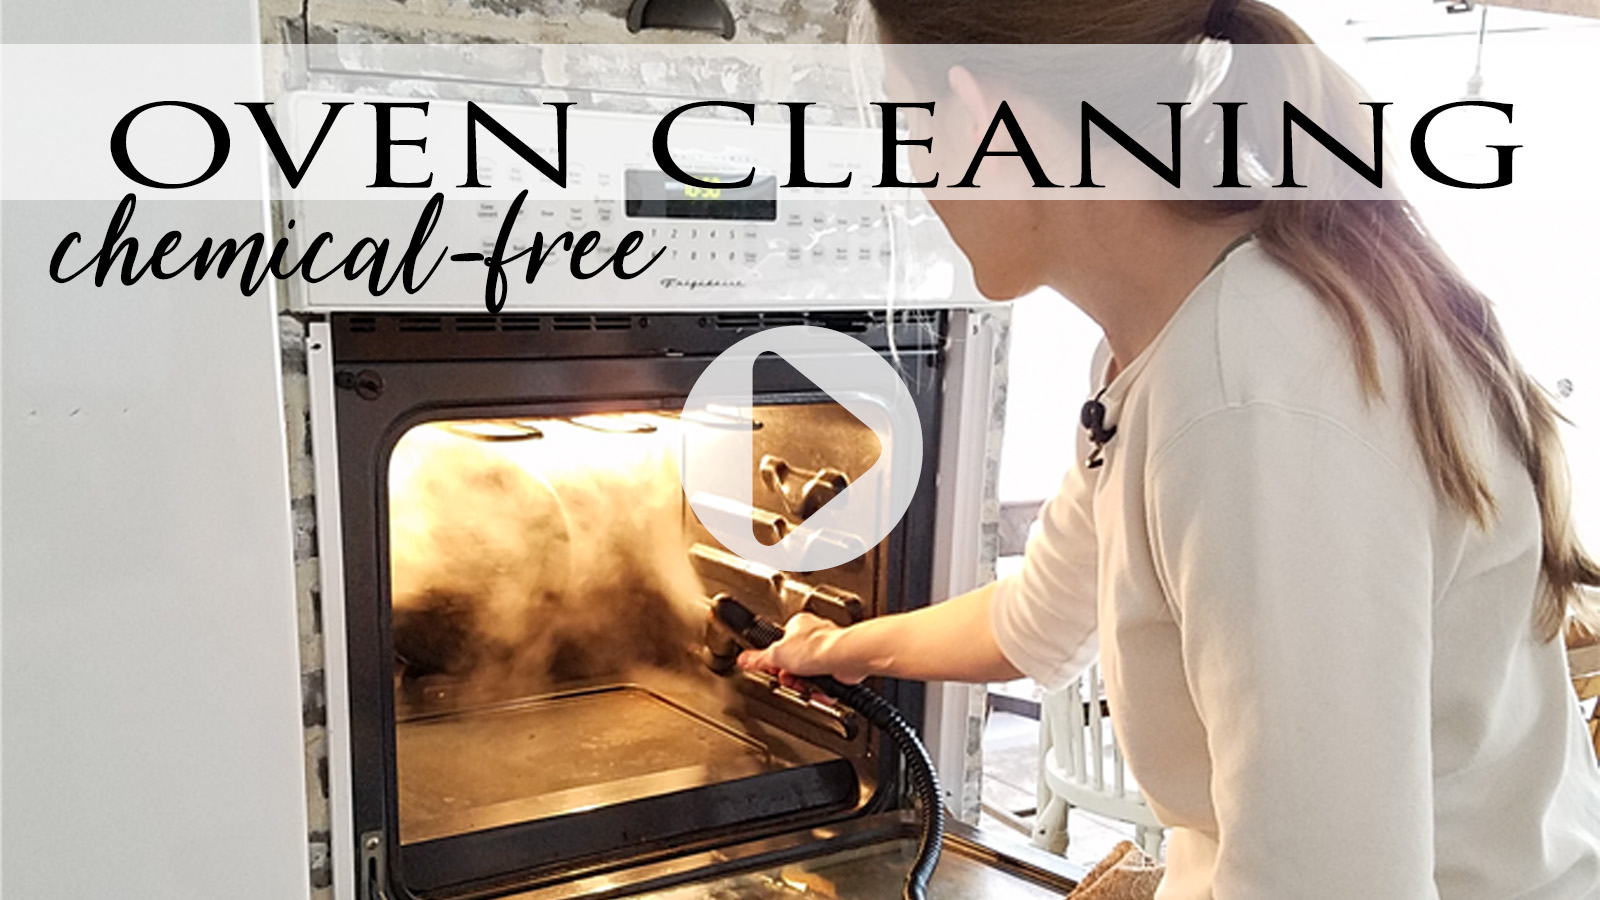 DIY Video Tutorial for Chemical-Free Oven Cleaning   prodigalpieces.com